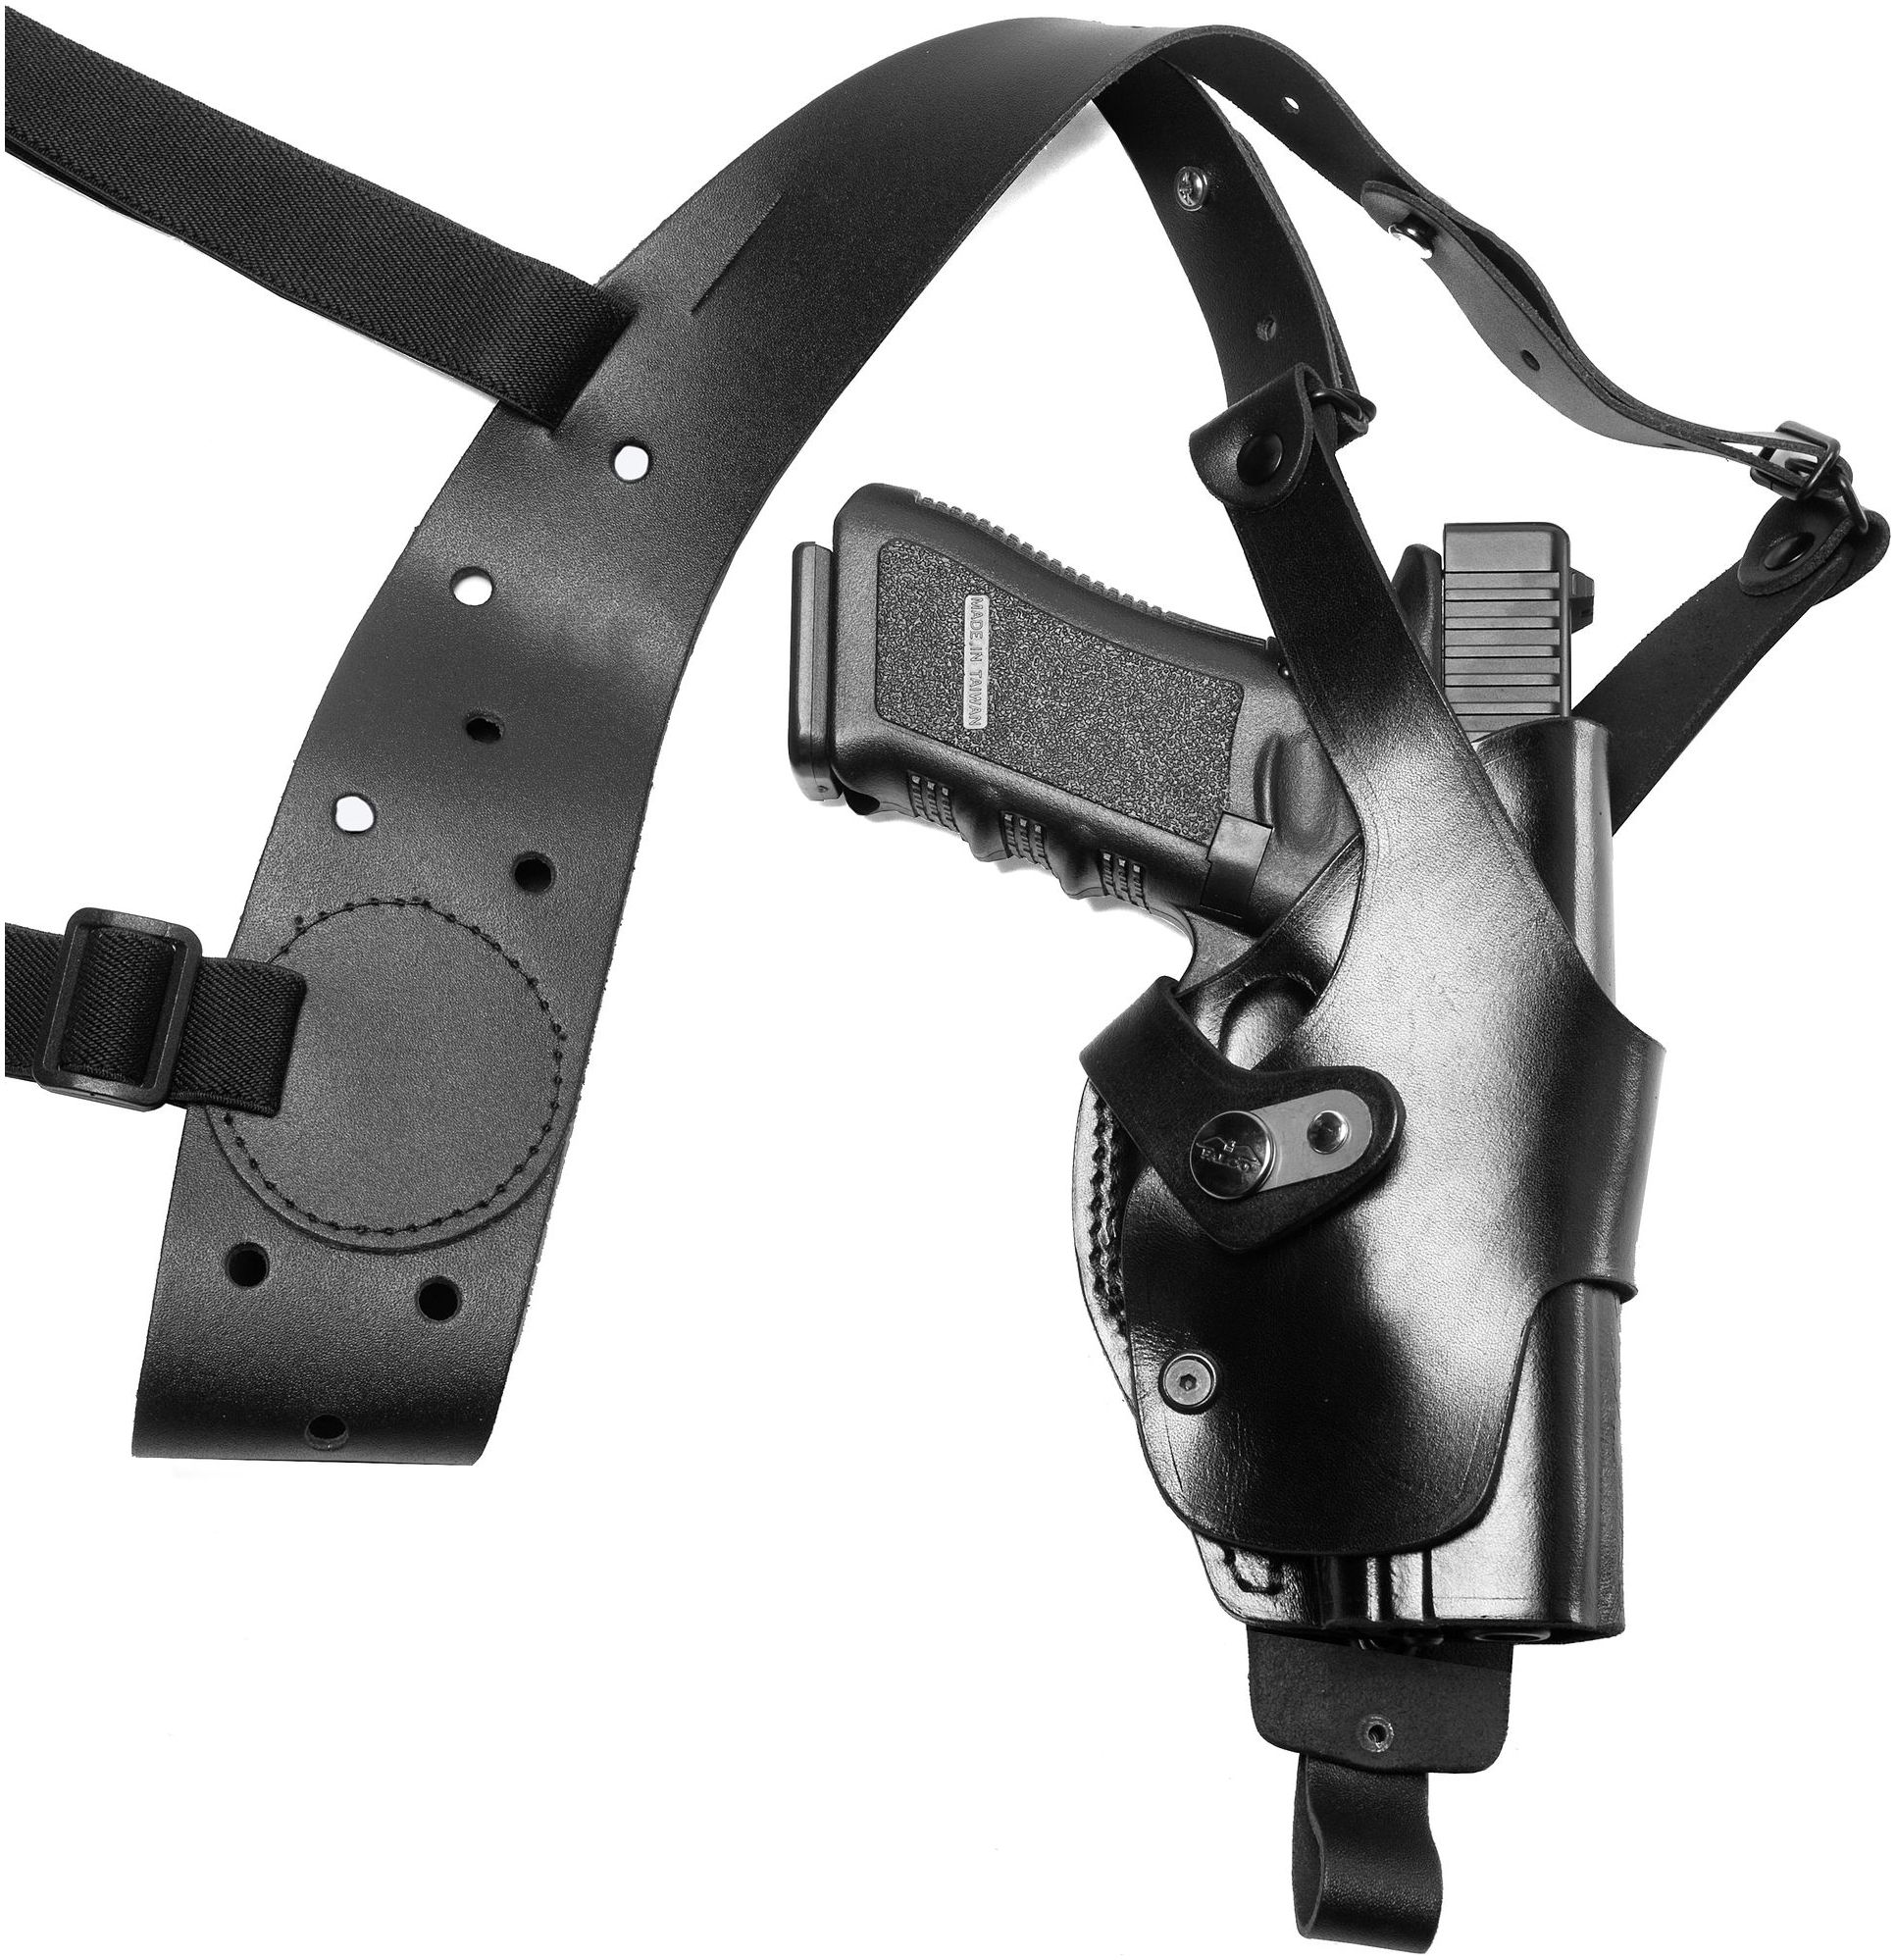 Falco Holsters Vertical Roto-Shoulder holster system for Glock 21